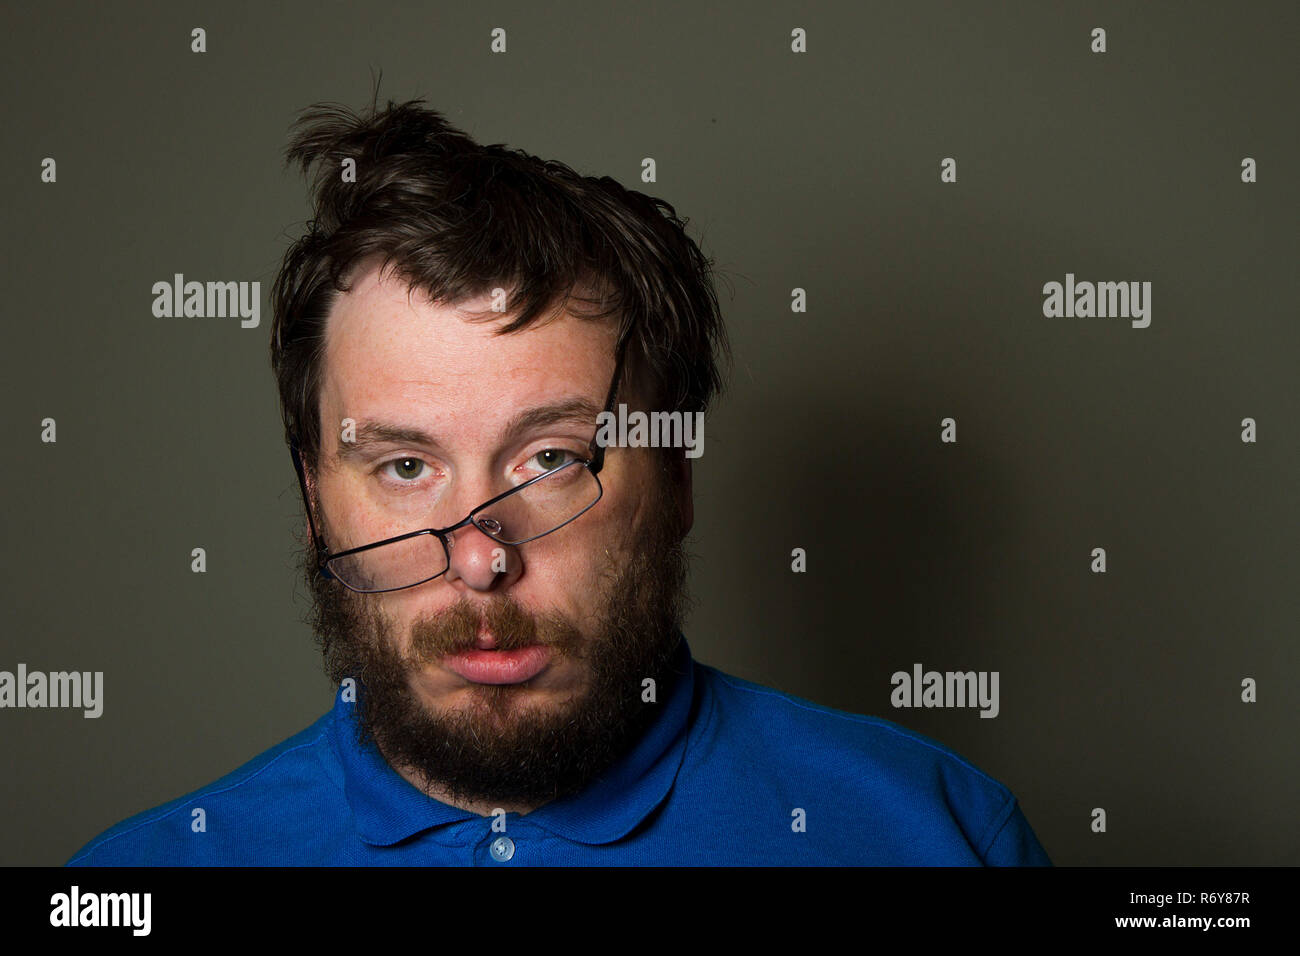 guy who has seen better days - Stock Image